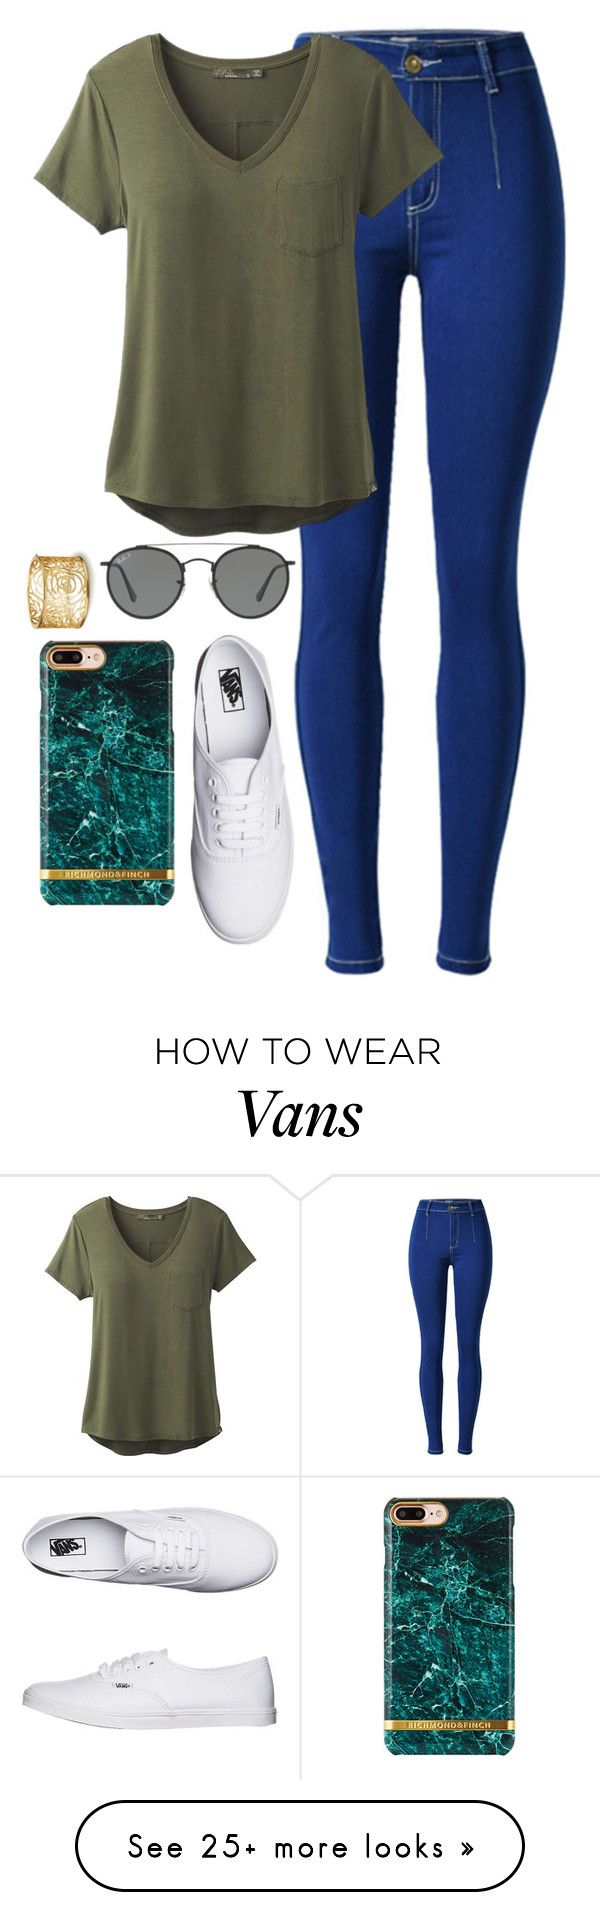 """""""Ask me random questions✨"""" by thekaylabella on Polyvore featuring prAna, Vans and Ray-Ban"""